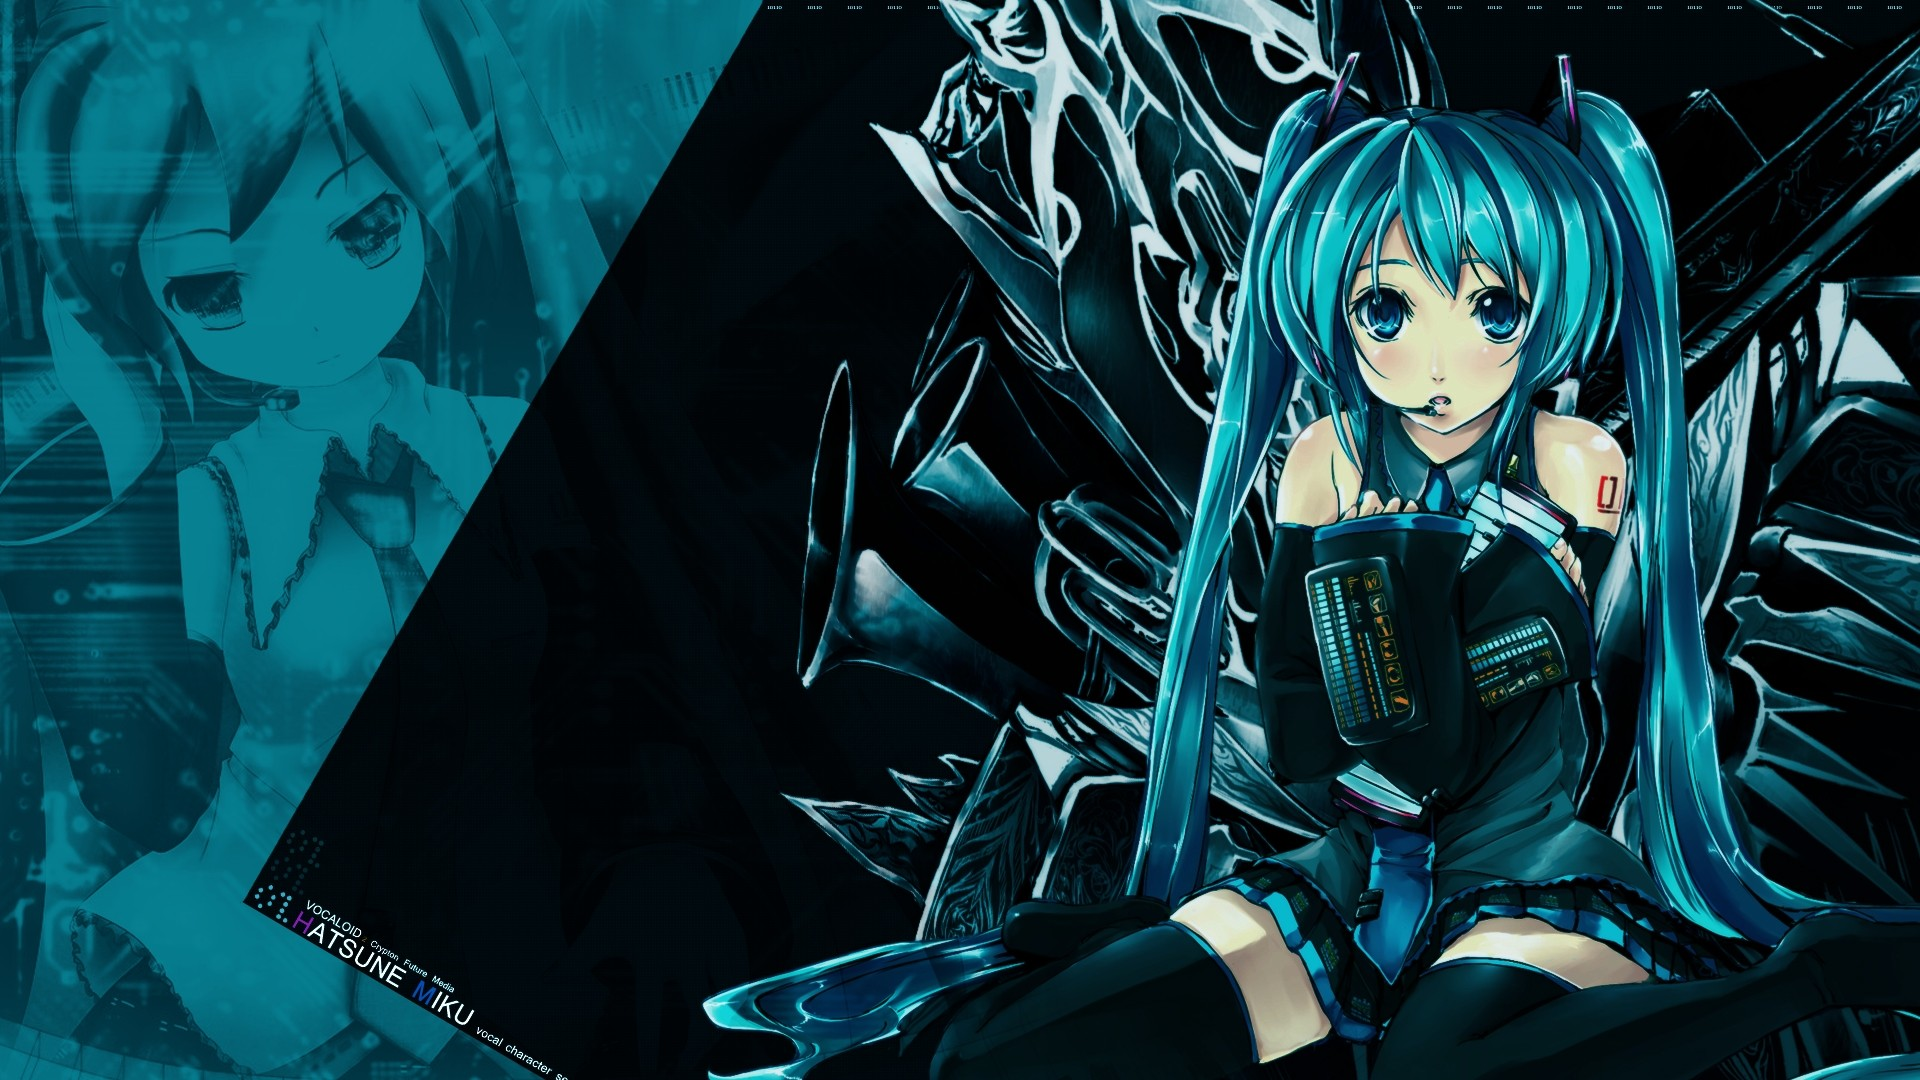 Hatsune Miku hd desktop wallpaper